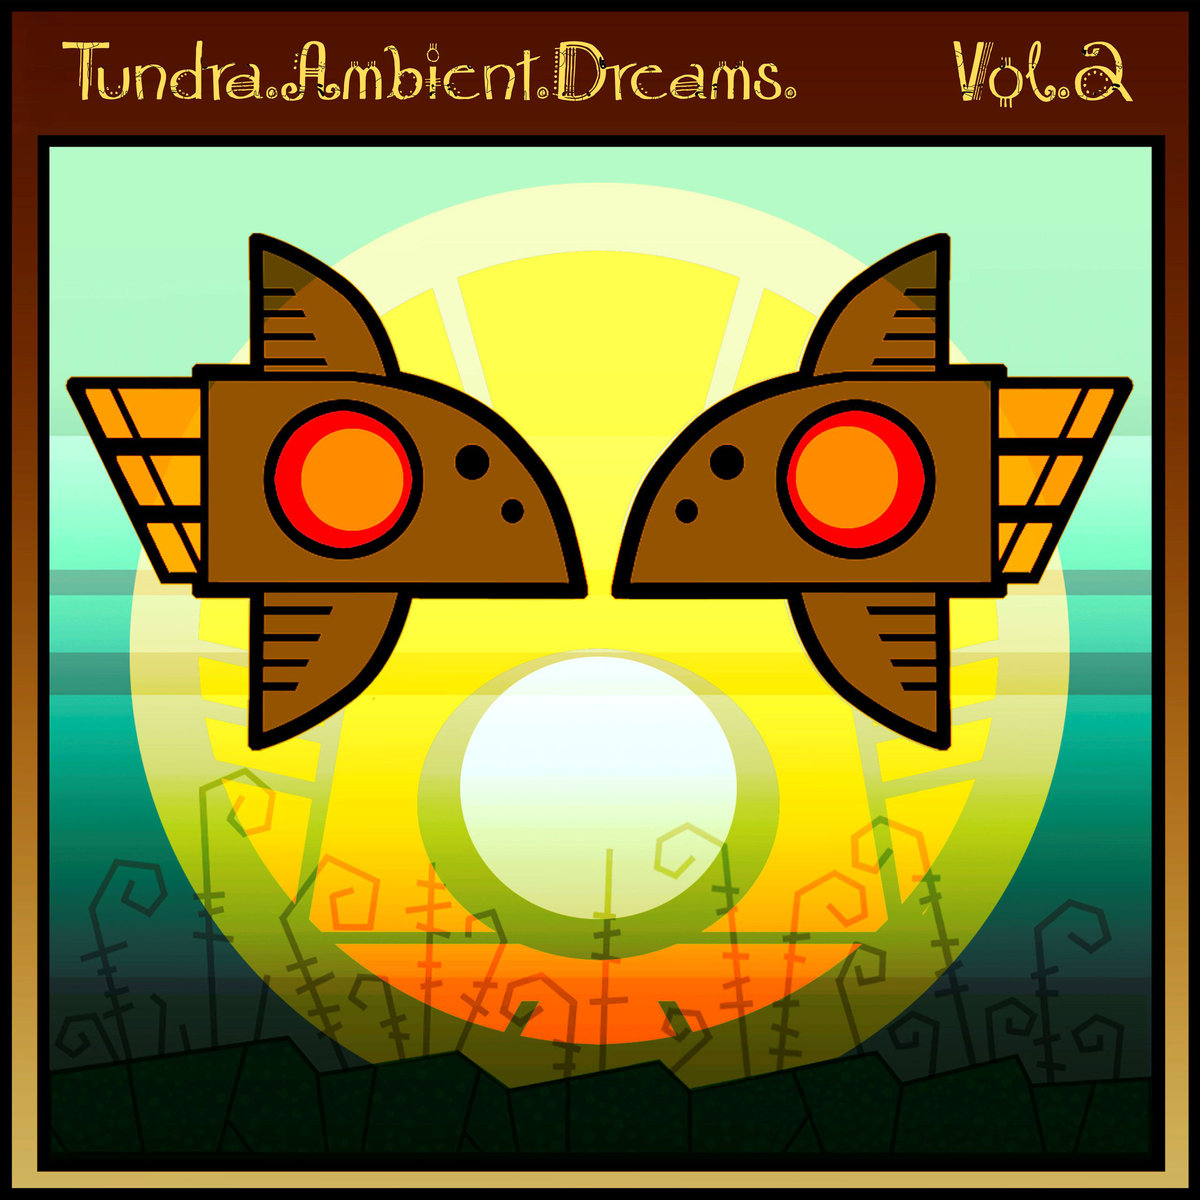 Simiram - Starfishers @ 'Ellipsis II - Tundra.Ambient.Dreams. Vol.2' album (electronic, ambient)